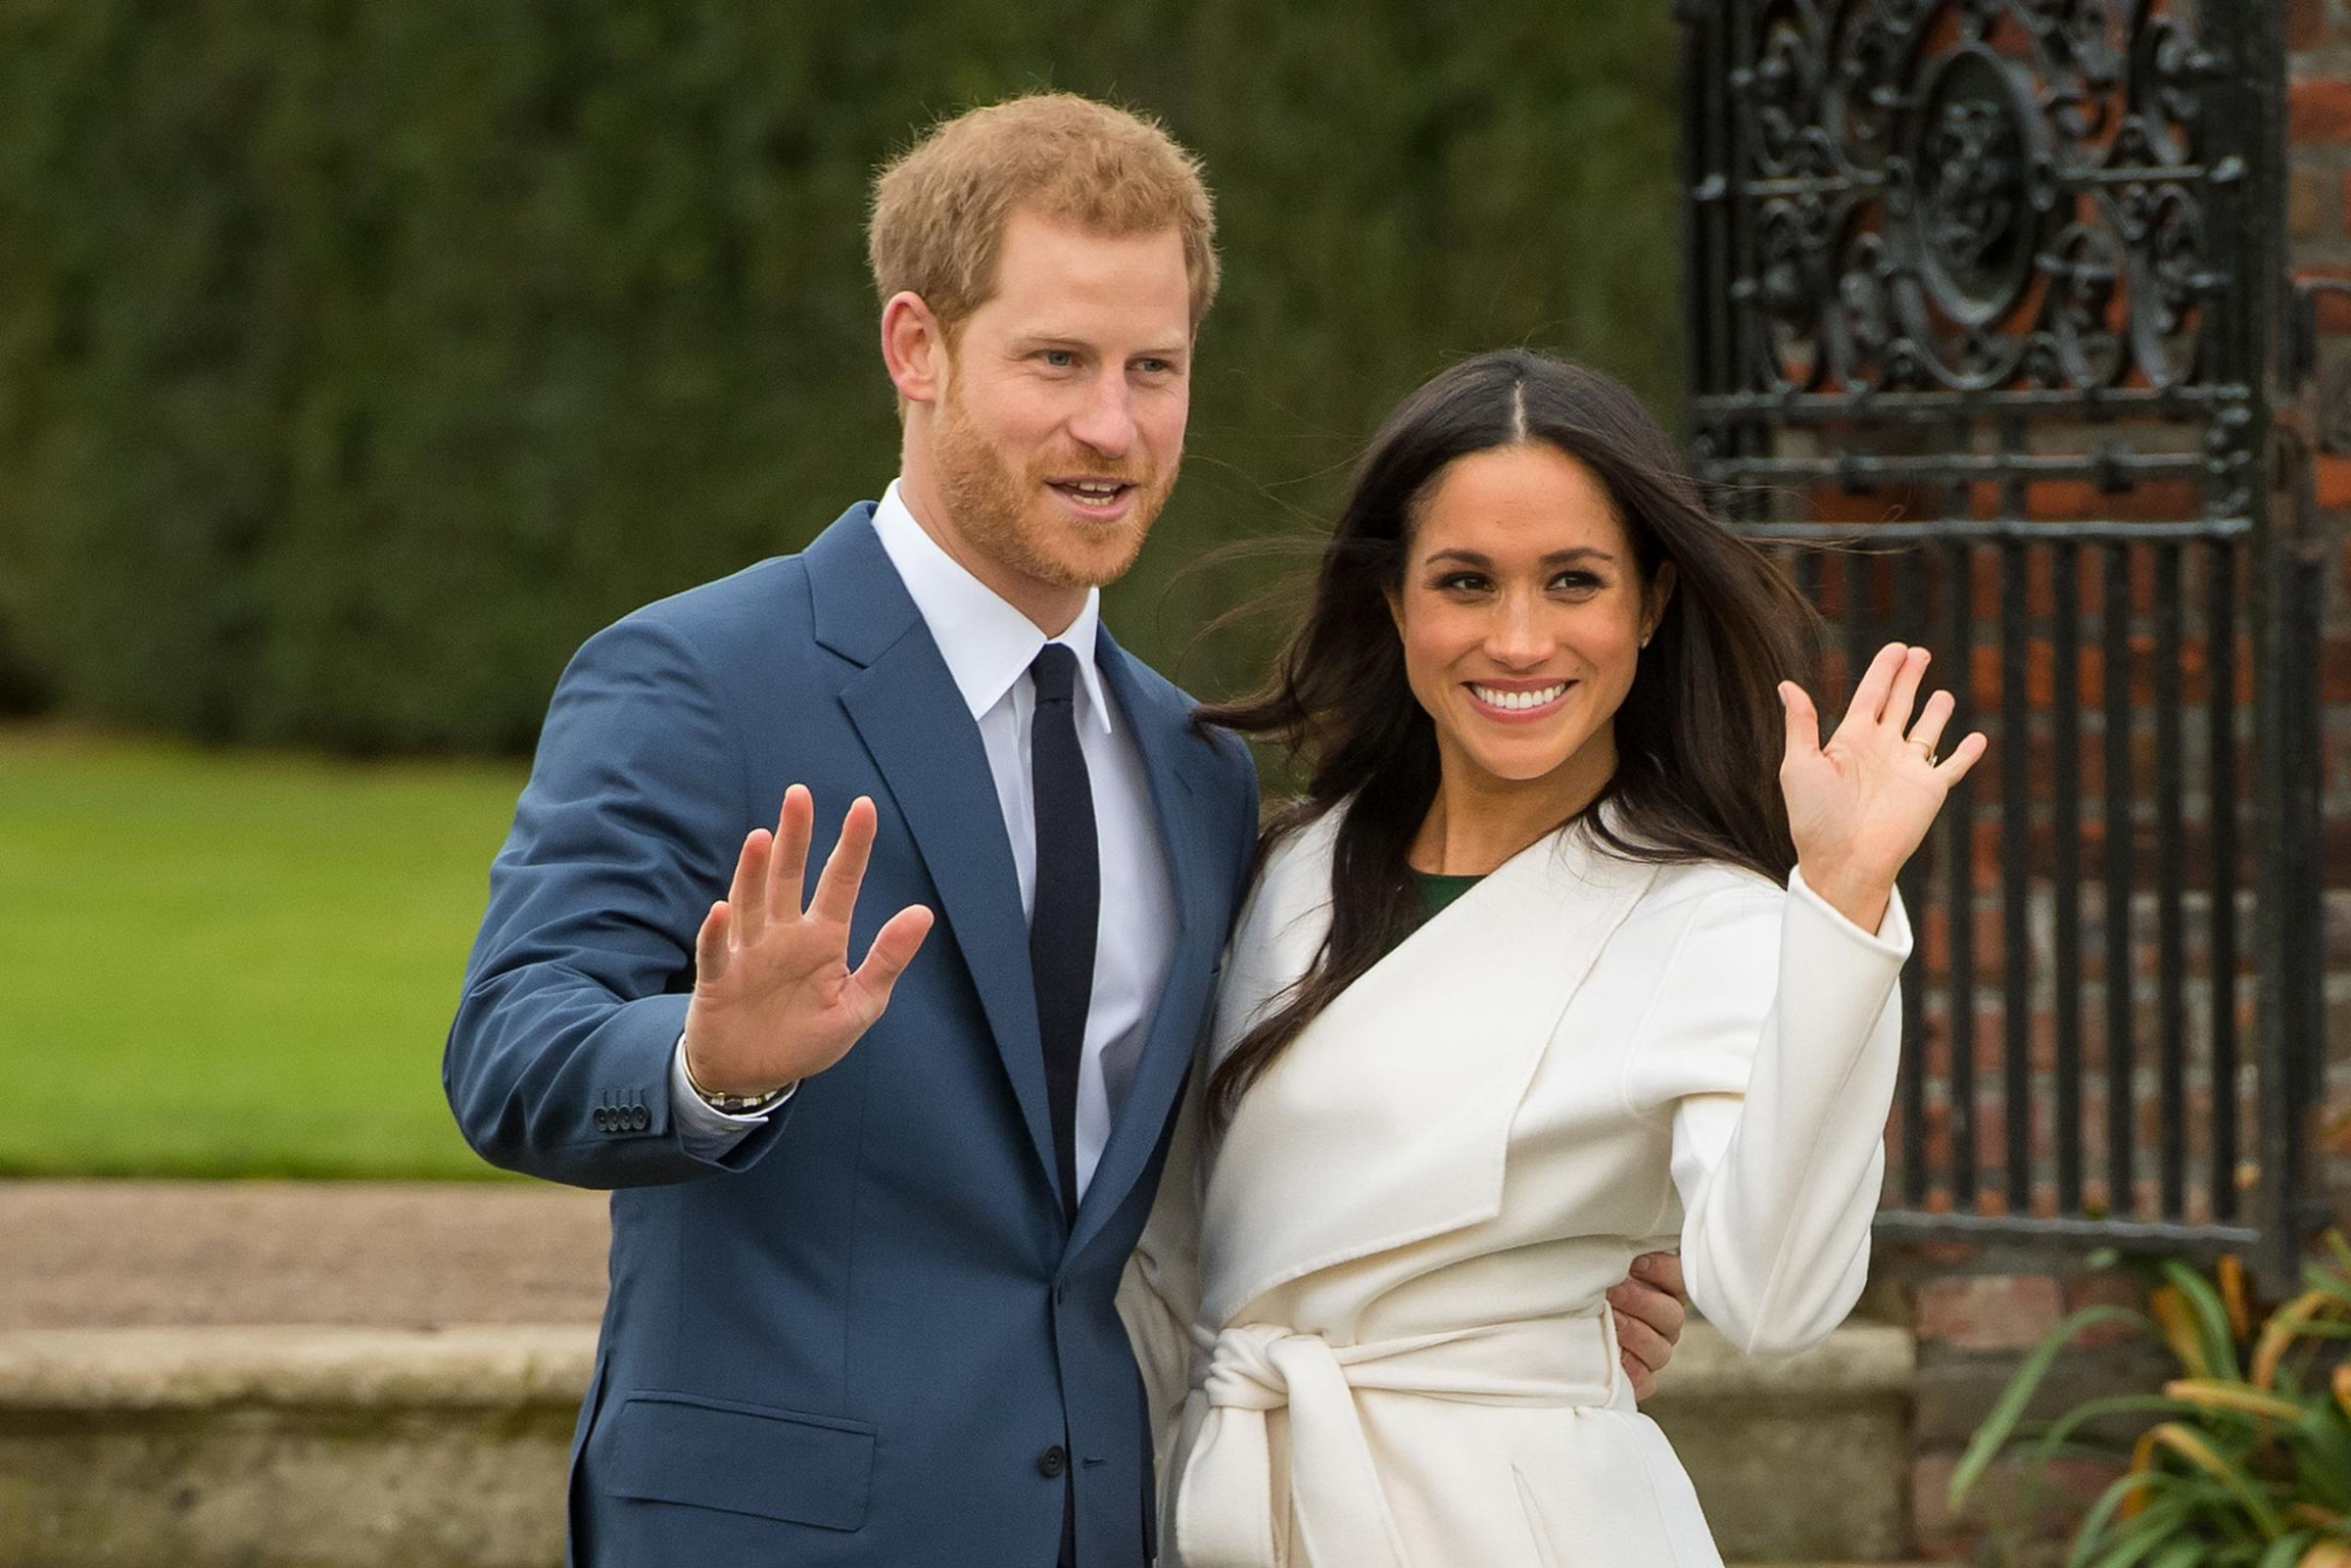 Pubs will remain open for longer to celebrate Prince Harry and Meghan Markle's wedding